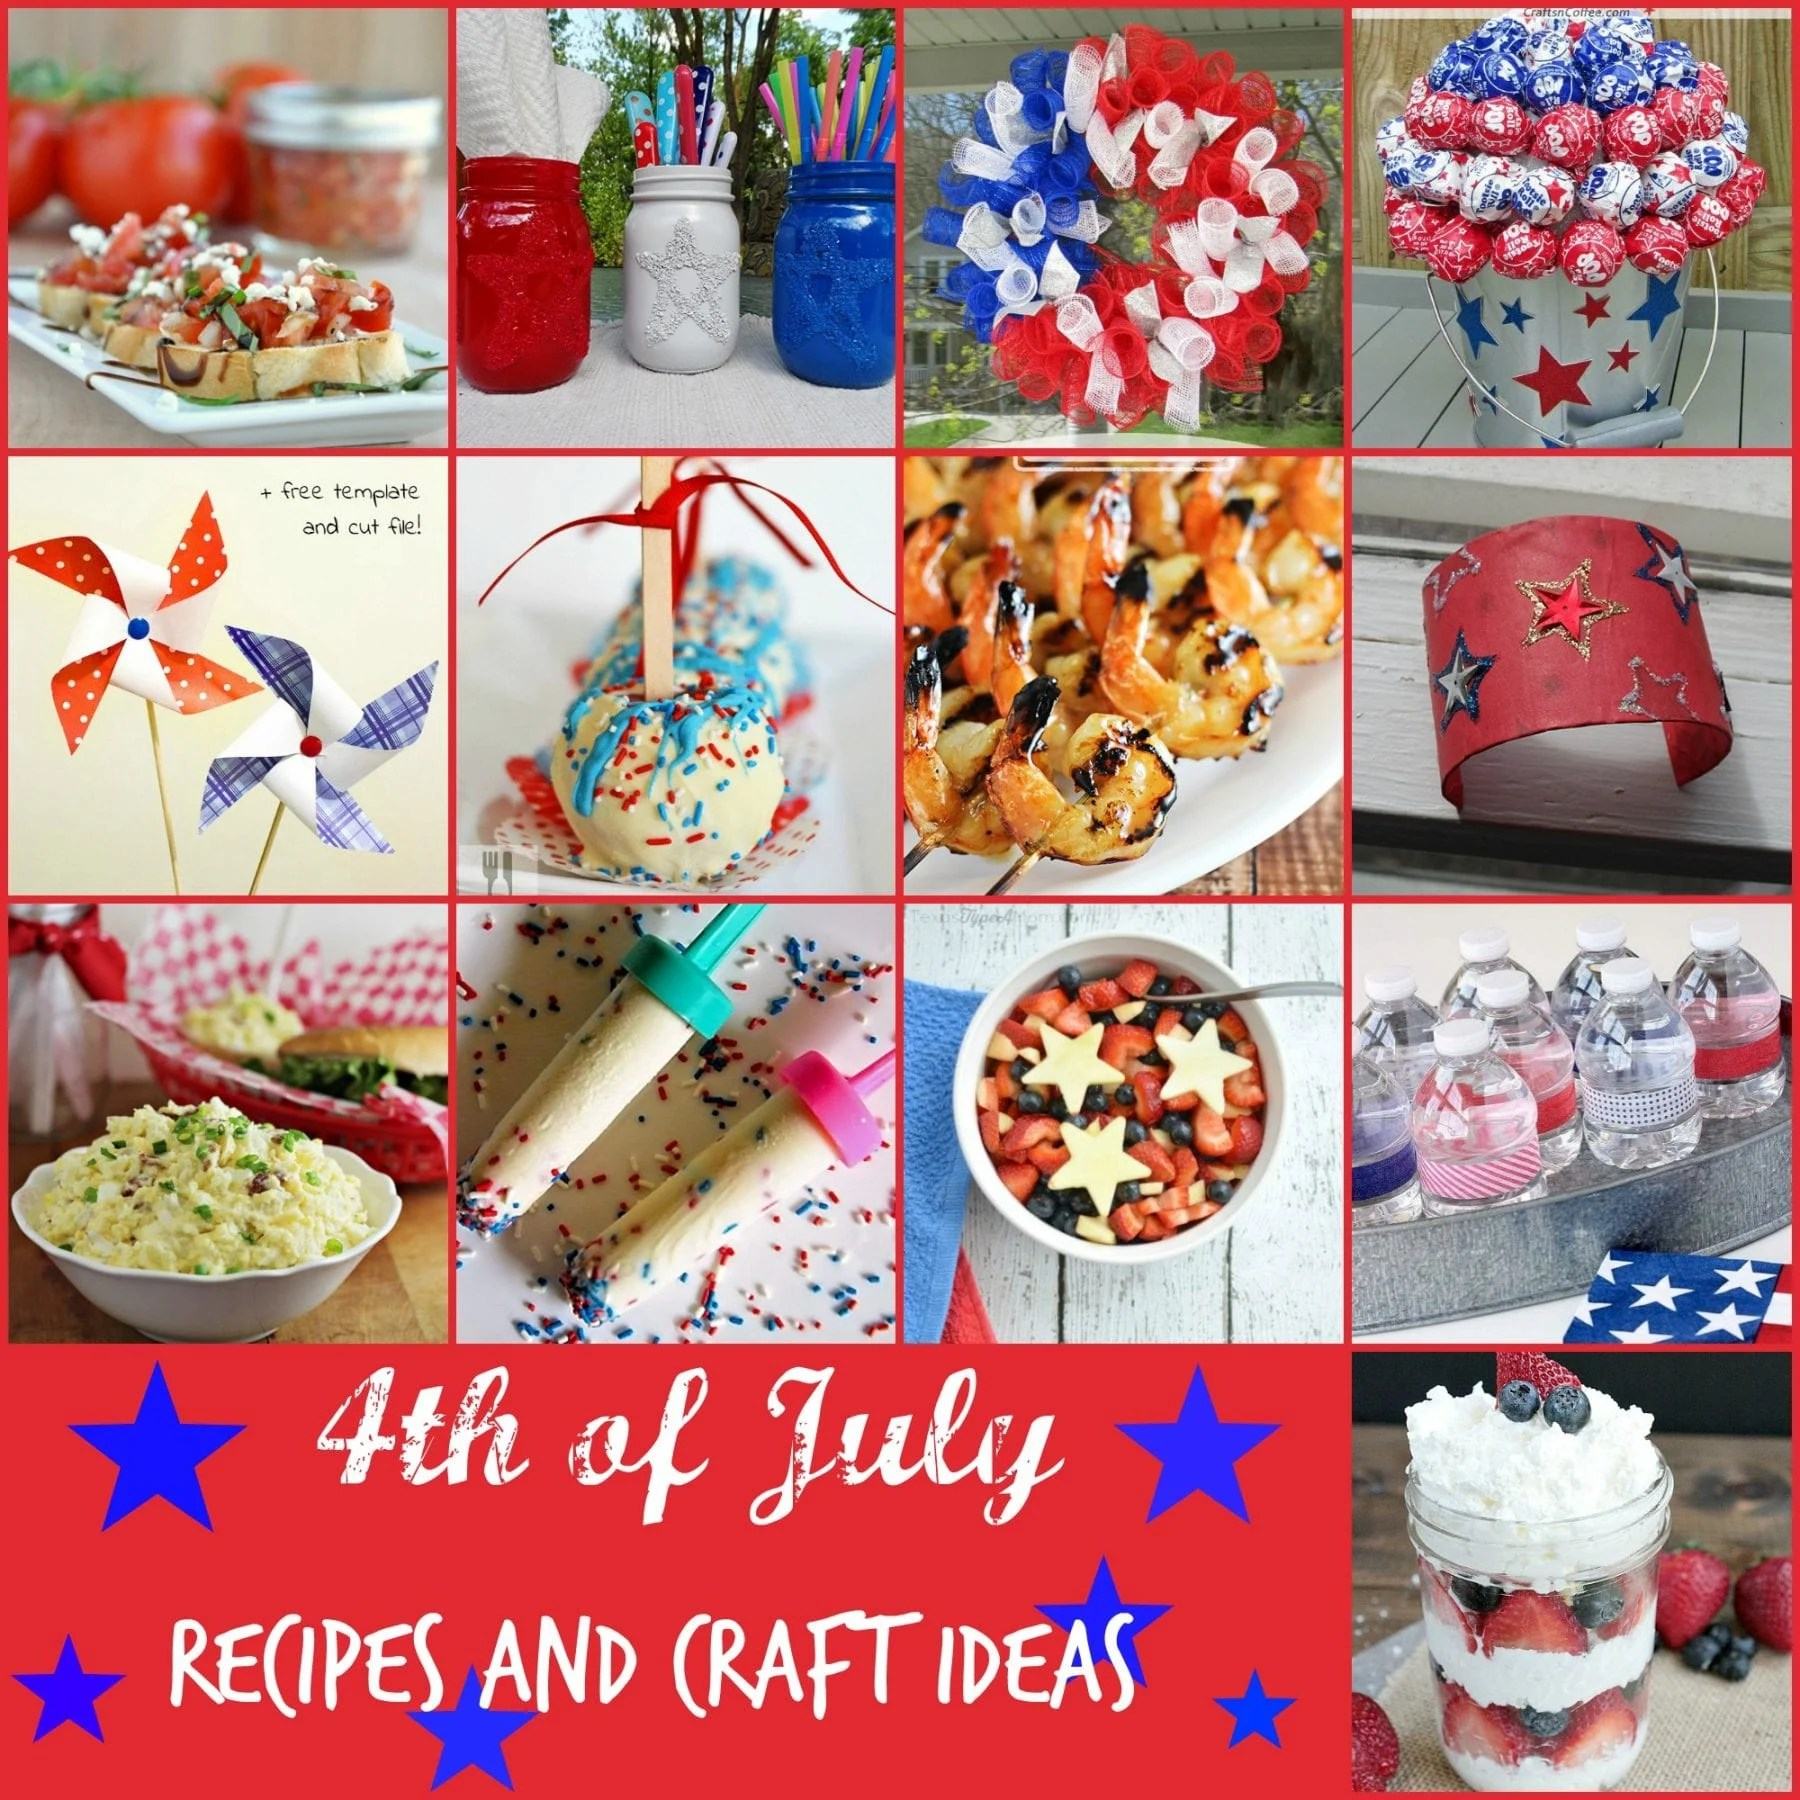 4th of july recipes and craft ideas michelle 39 s party plan it for July 4th food ideas